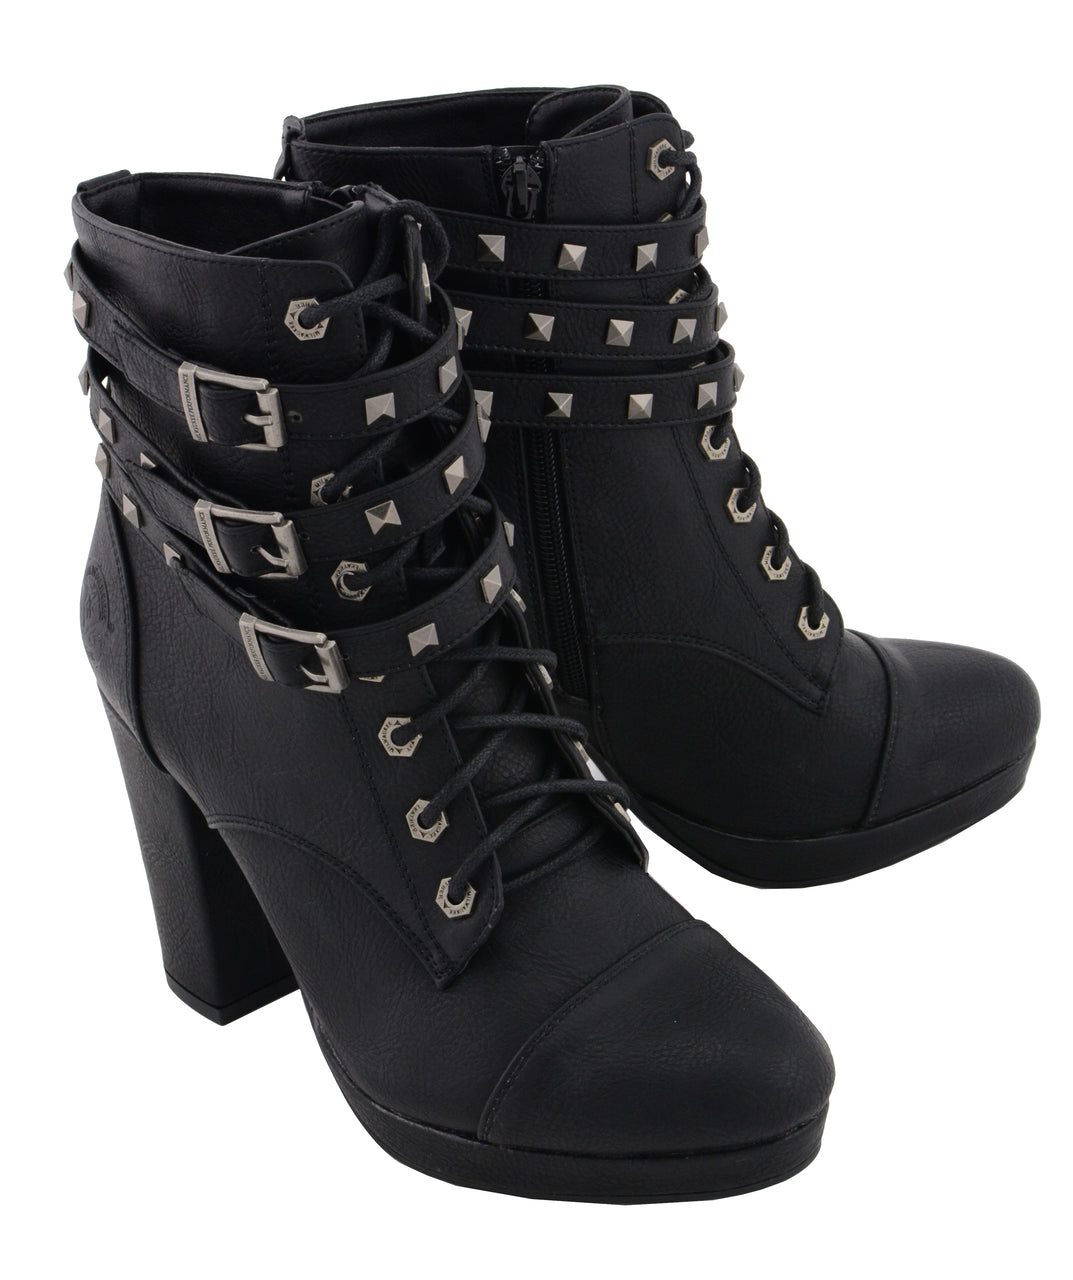 Women Lace to Toe Boot w/ Triple Strap Studded Accents - HighwayLeather